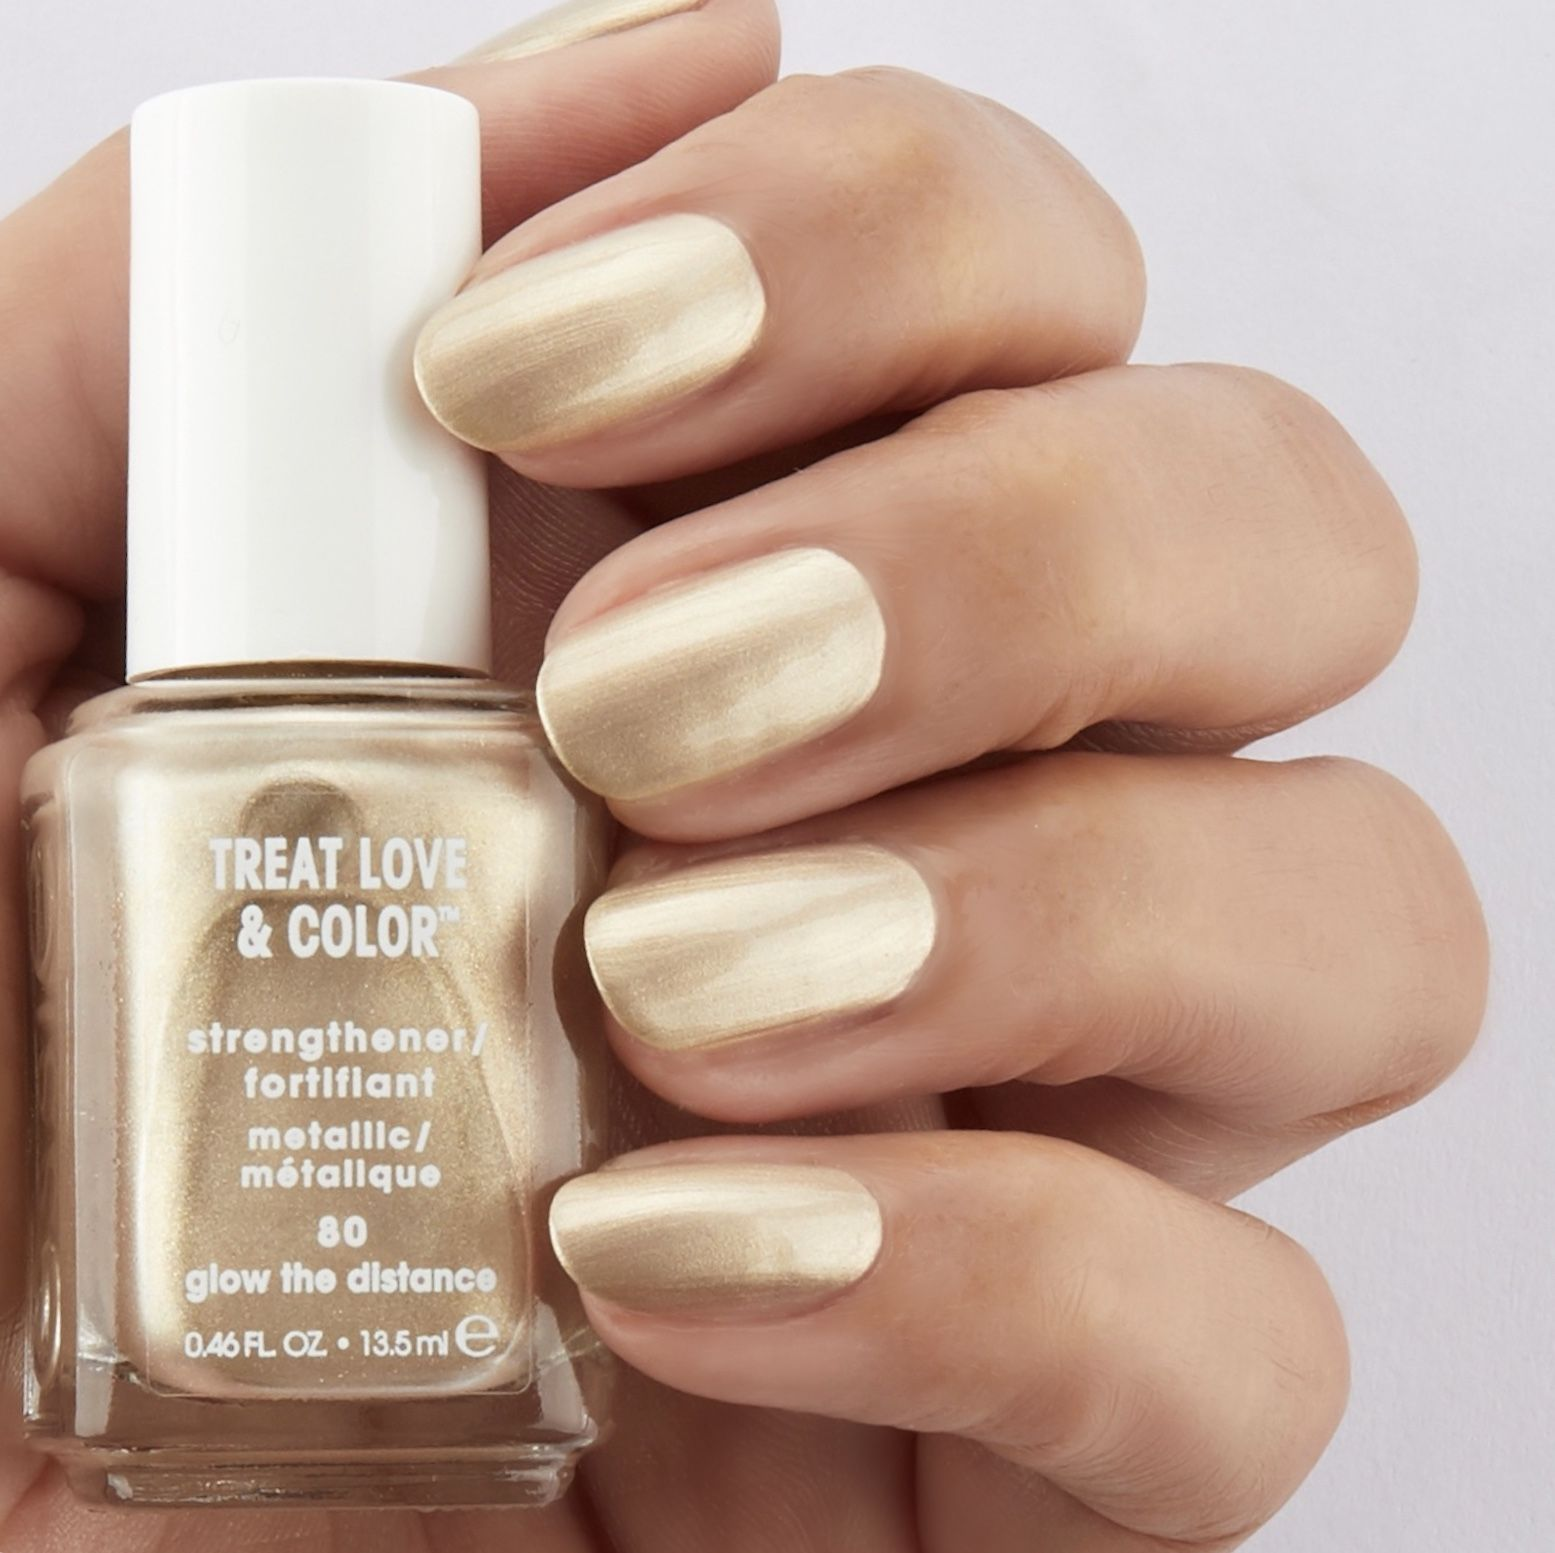 Essie Metallic Gold Nail Polish: Introducing New Essie Treat Love And Color Metallic Shade